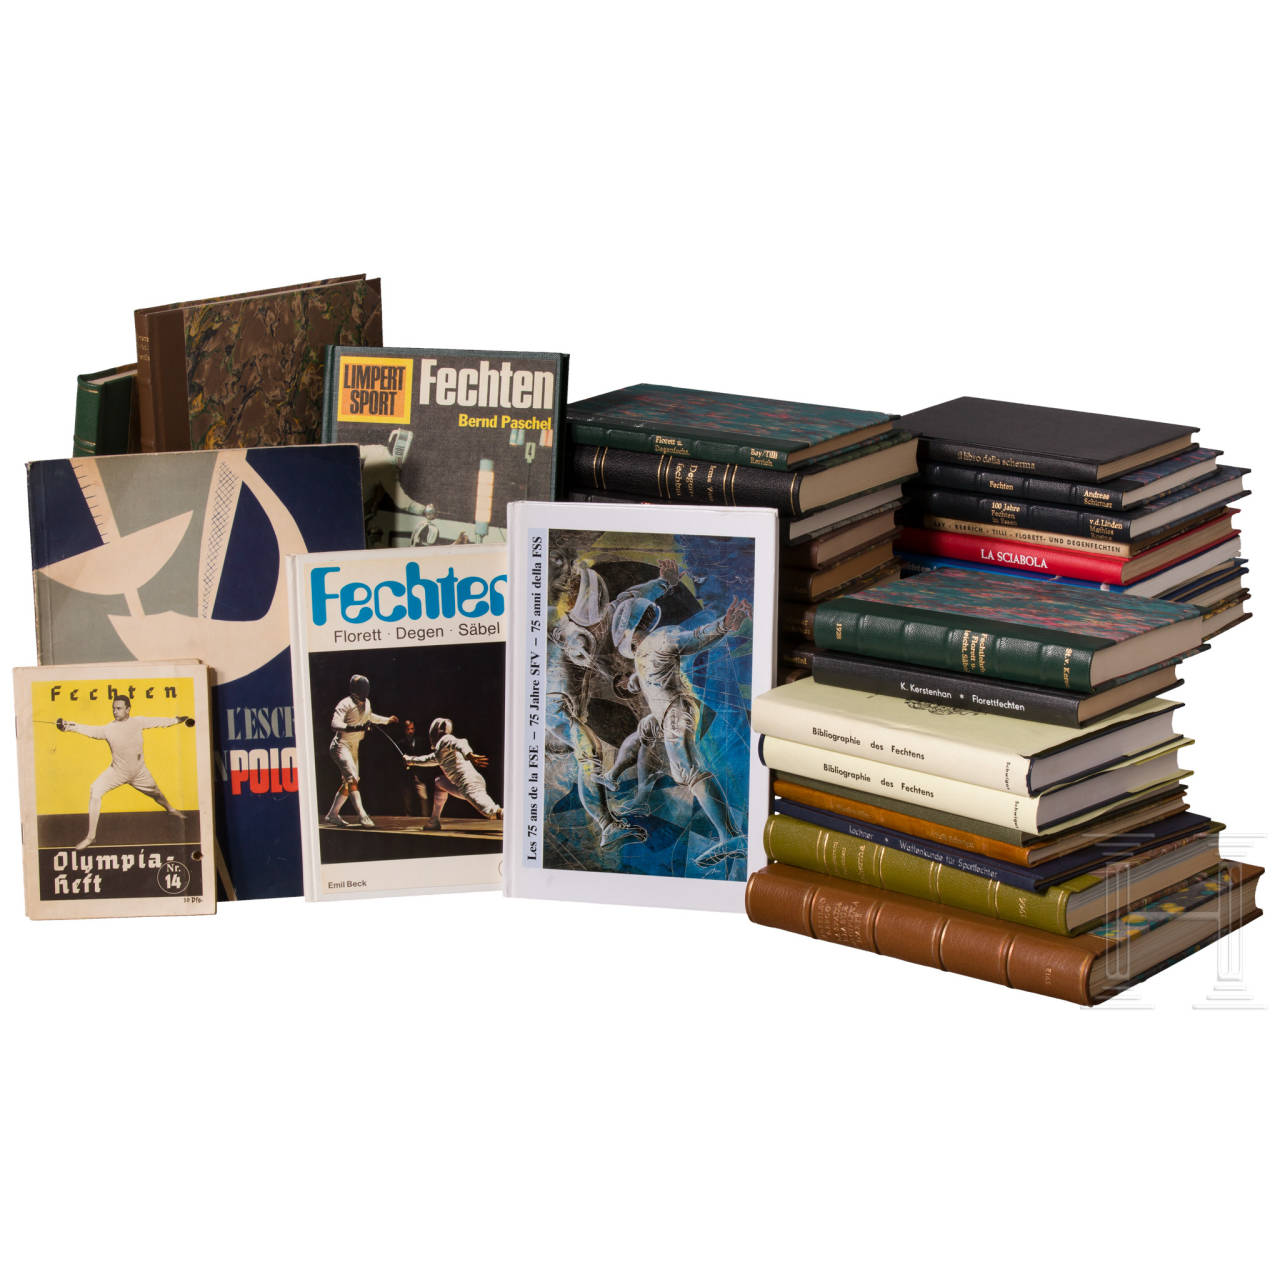 About 40 volumes of German and international fencing literature